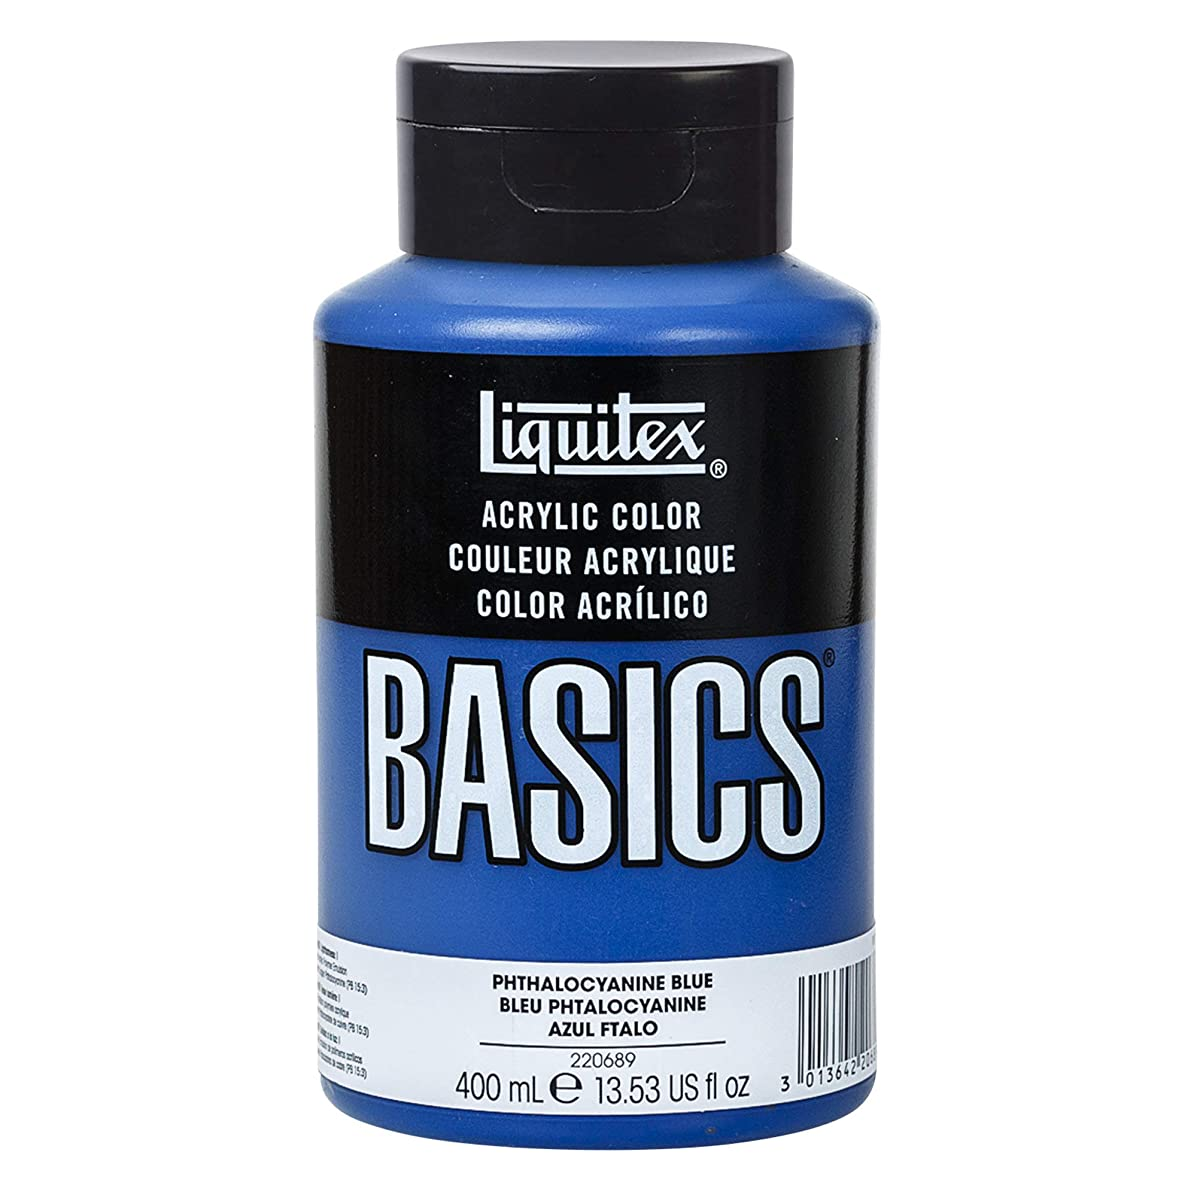 Liquitex BASICS Acrylic Paint, 13.5-oz bottle, Phthalocyanine Blue